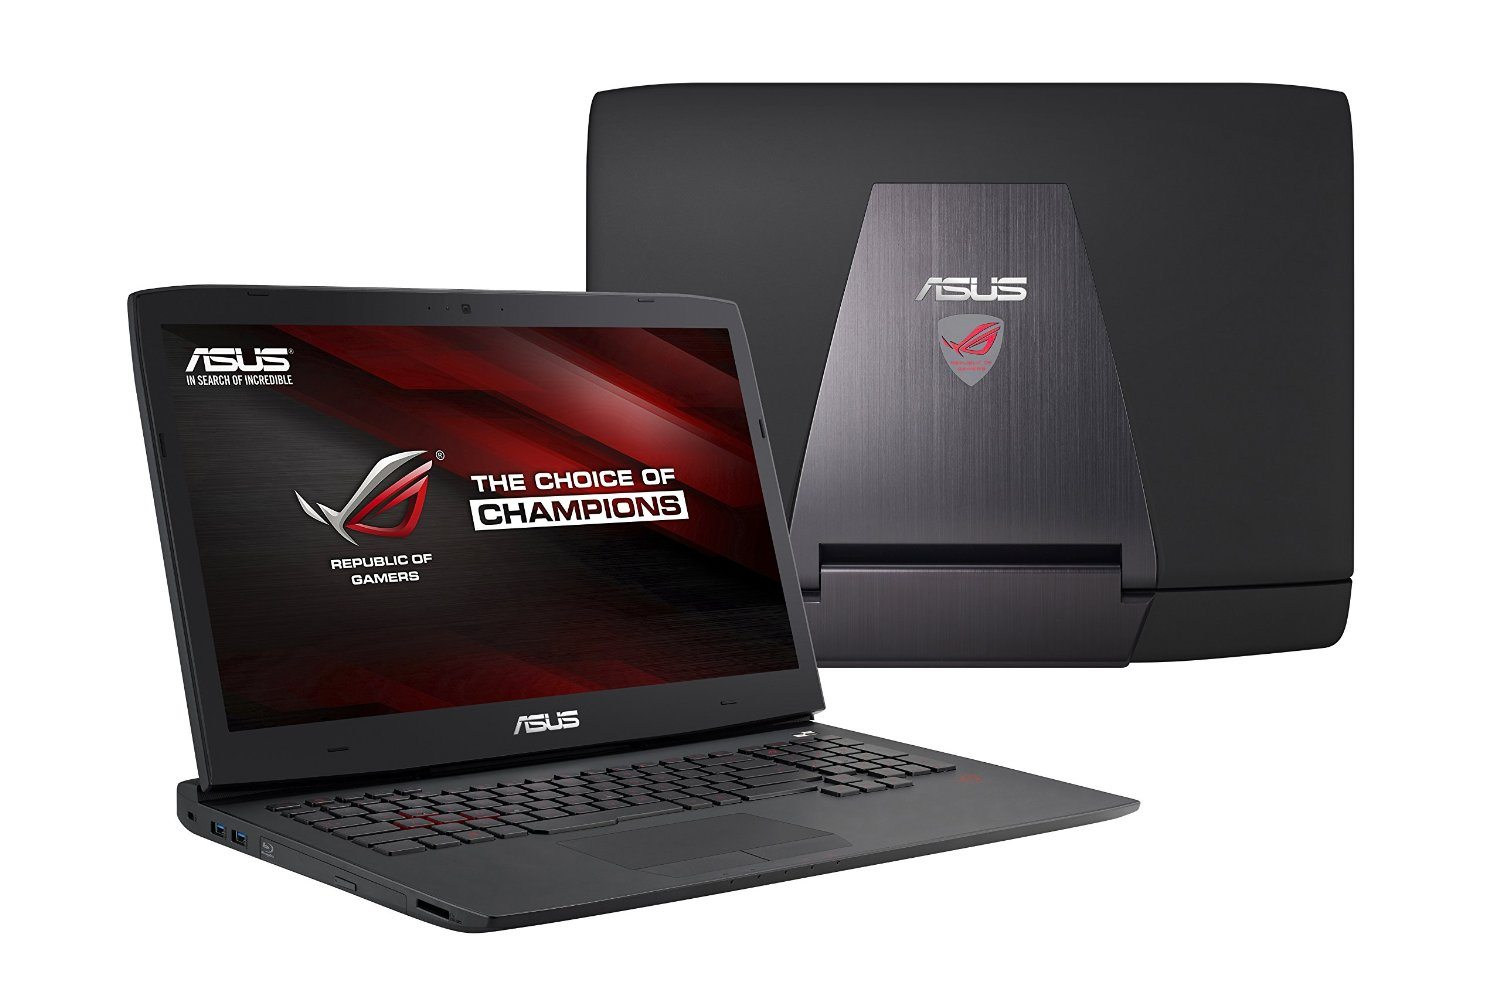 Asus Rolls Most Powerful Gaming Laptop